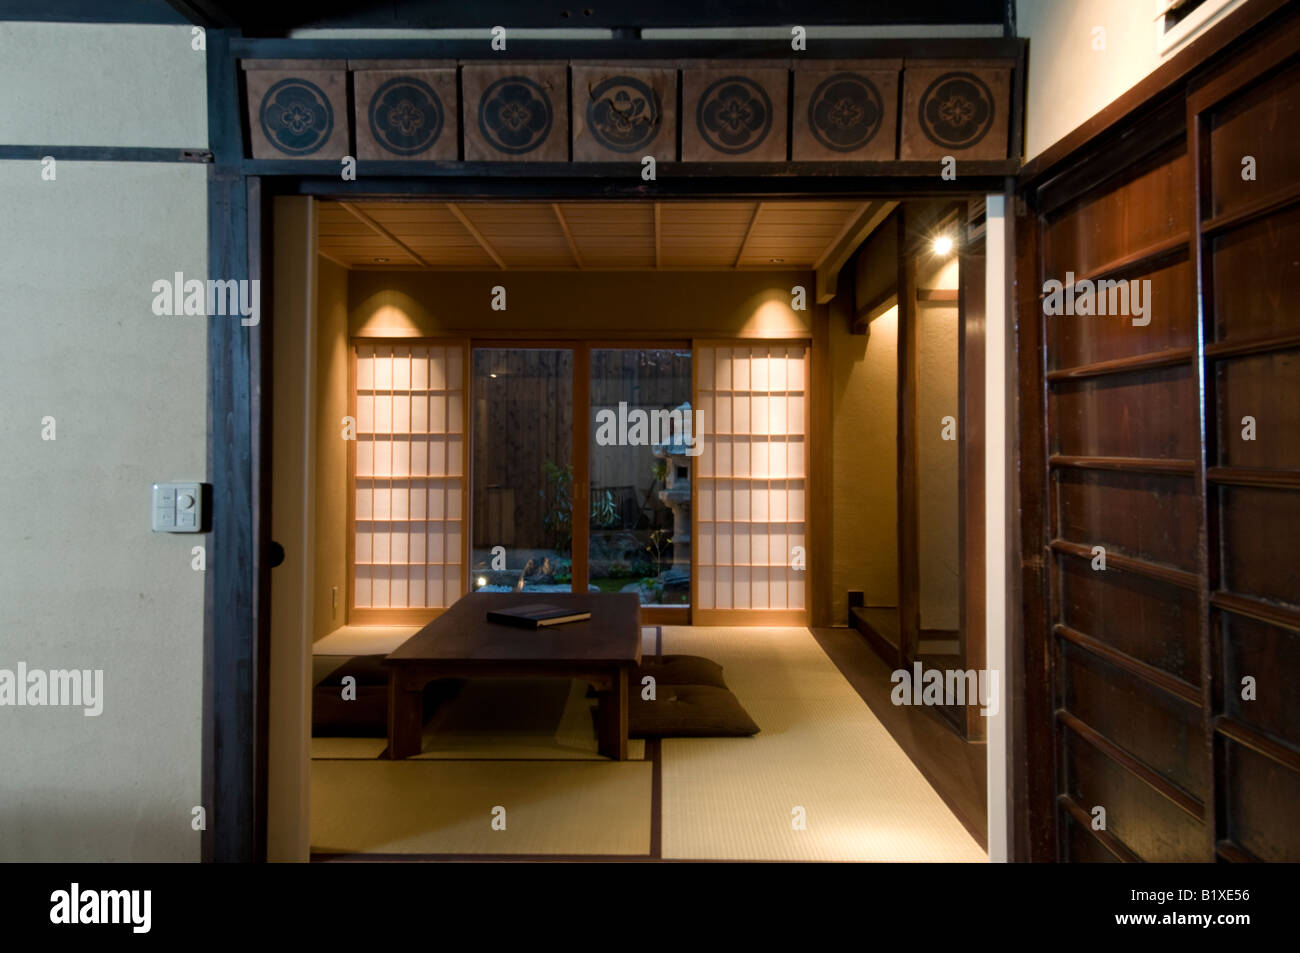 Japan Traditional Home Interior Living Room With Sliding Doors And Stock Photo 18406898 Alamy